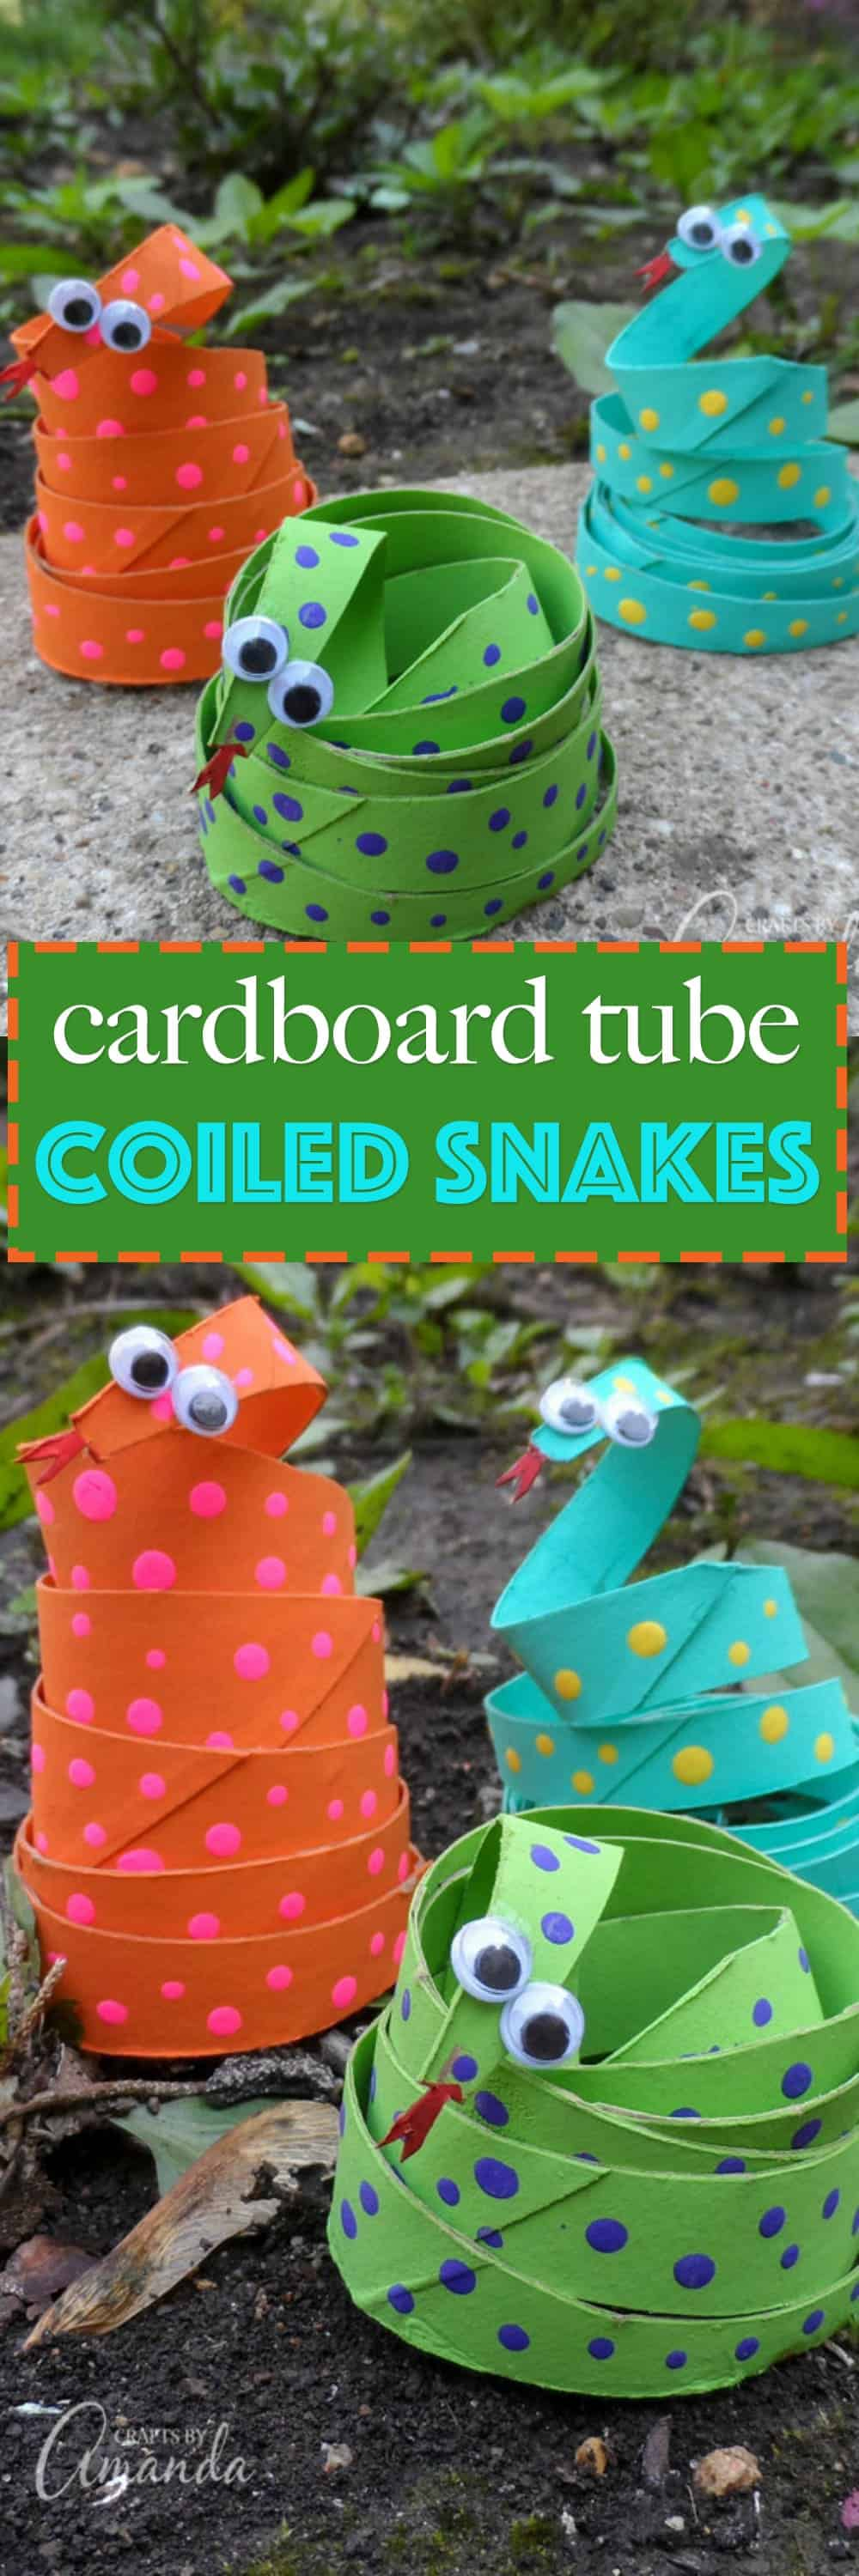 This cardboard tube coiled snakes craft is a great way to teach kids the importance of recycling all while feeding their creative minds.